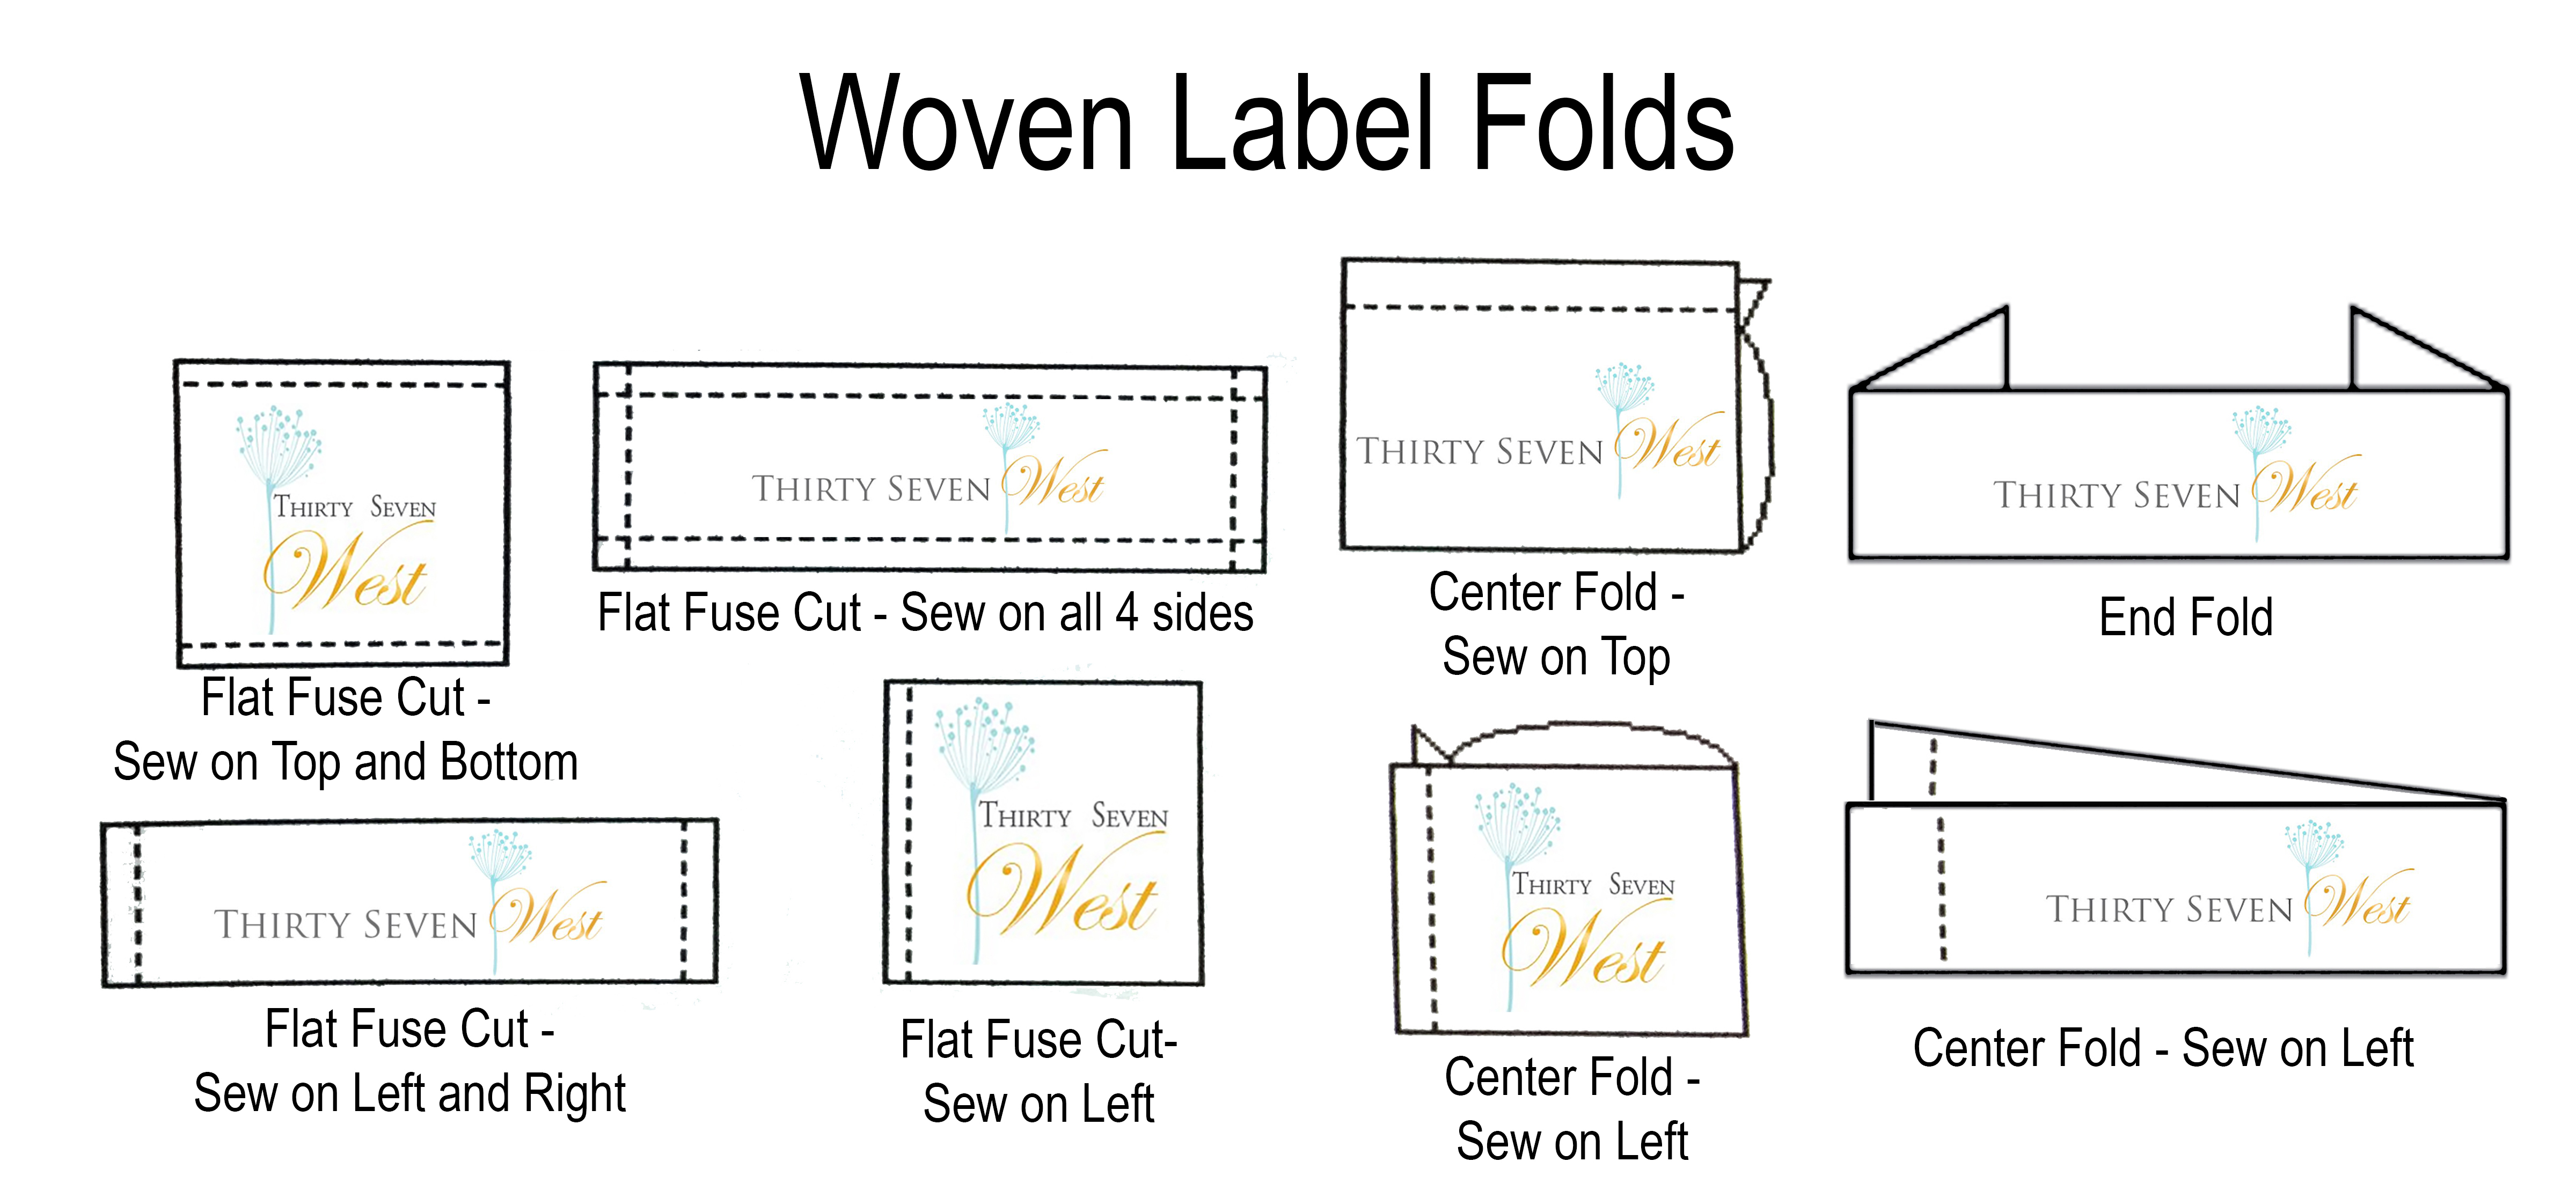 Custom Woven Label Folds, custom woven labels, personalized labels, custom labels, personalized woven labels, fabric labels, custom fabric labels, personalized fabric labels, Flat labels, End fold labels,